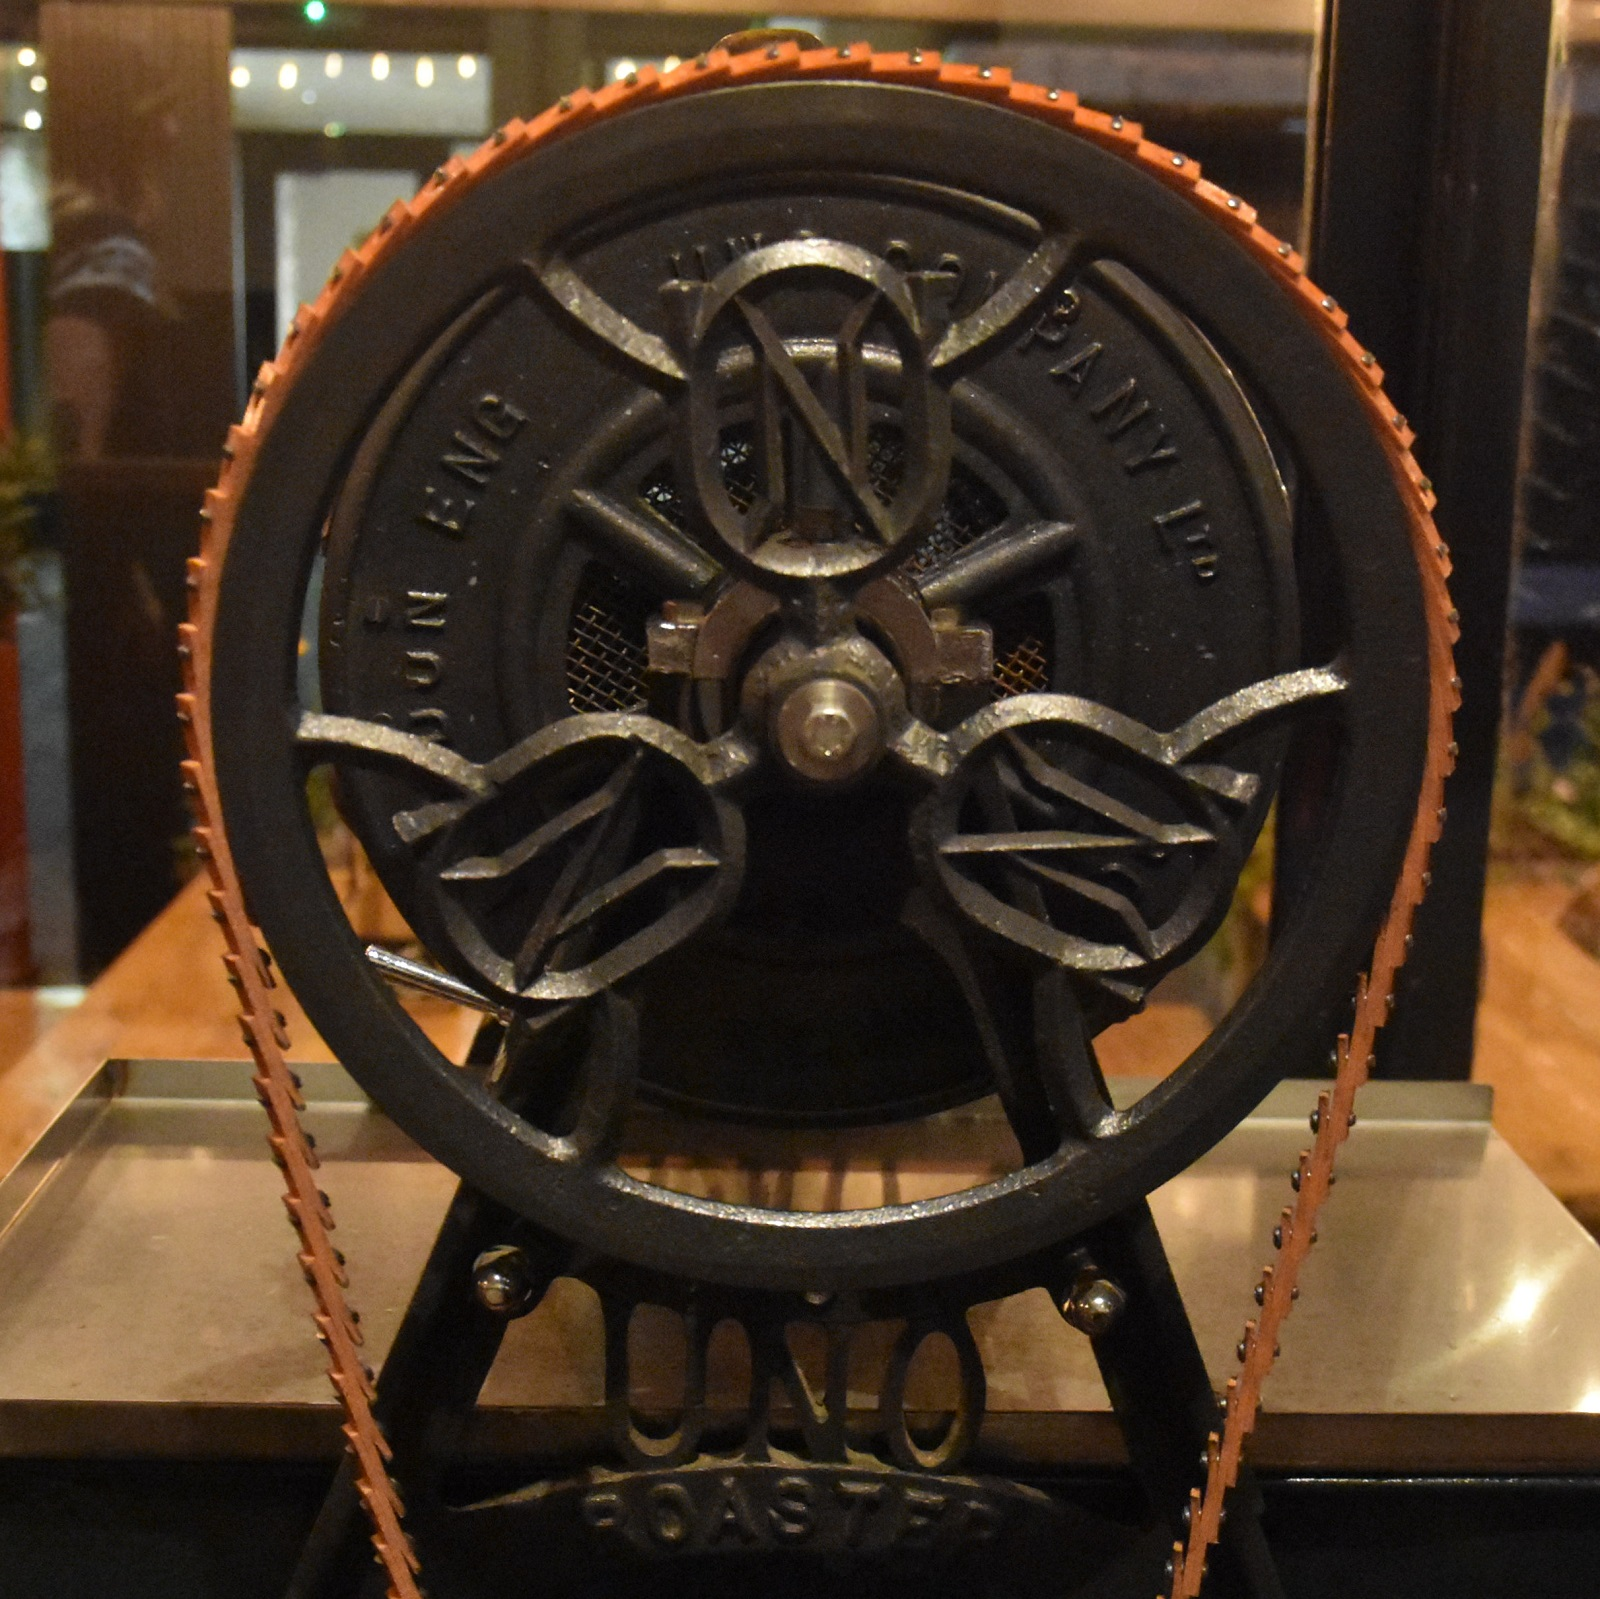 Details of the main drive wheel of the 100 year old, fully working Uno coffee roaster at Atkinsons in Mackie Mayor in Manchester.